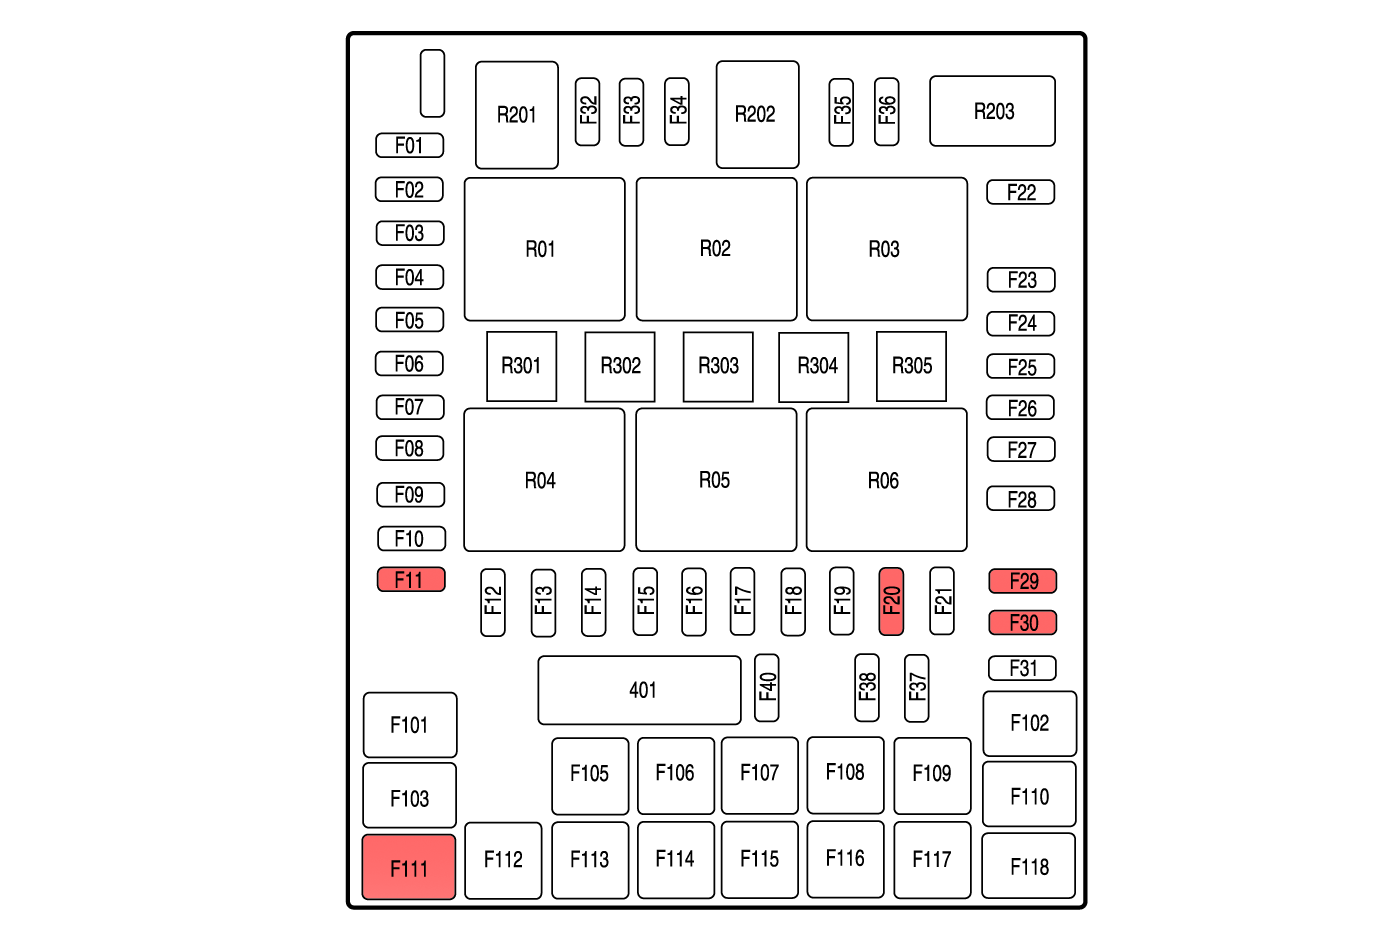 hight resolution of 2004 f 150 fuse box wiring diagram 2004 ford f150 4x4 wiring diagram 2004 f150 ford 4x4 fuse diagram